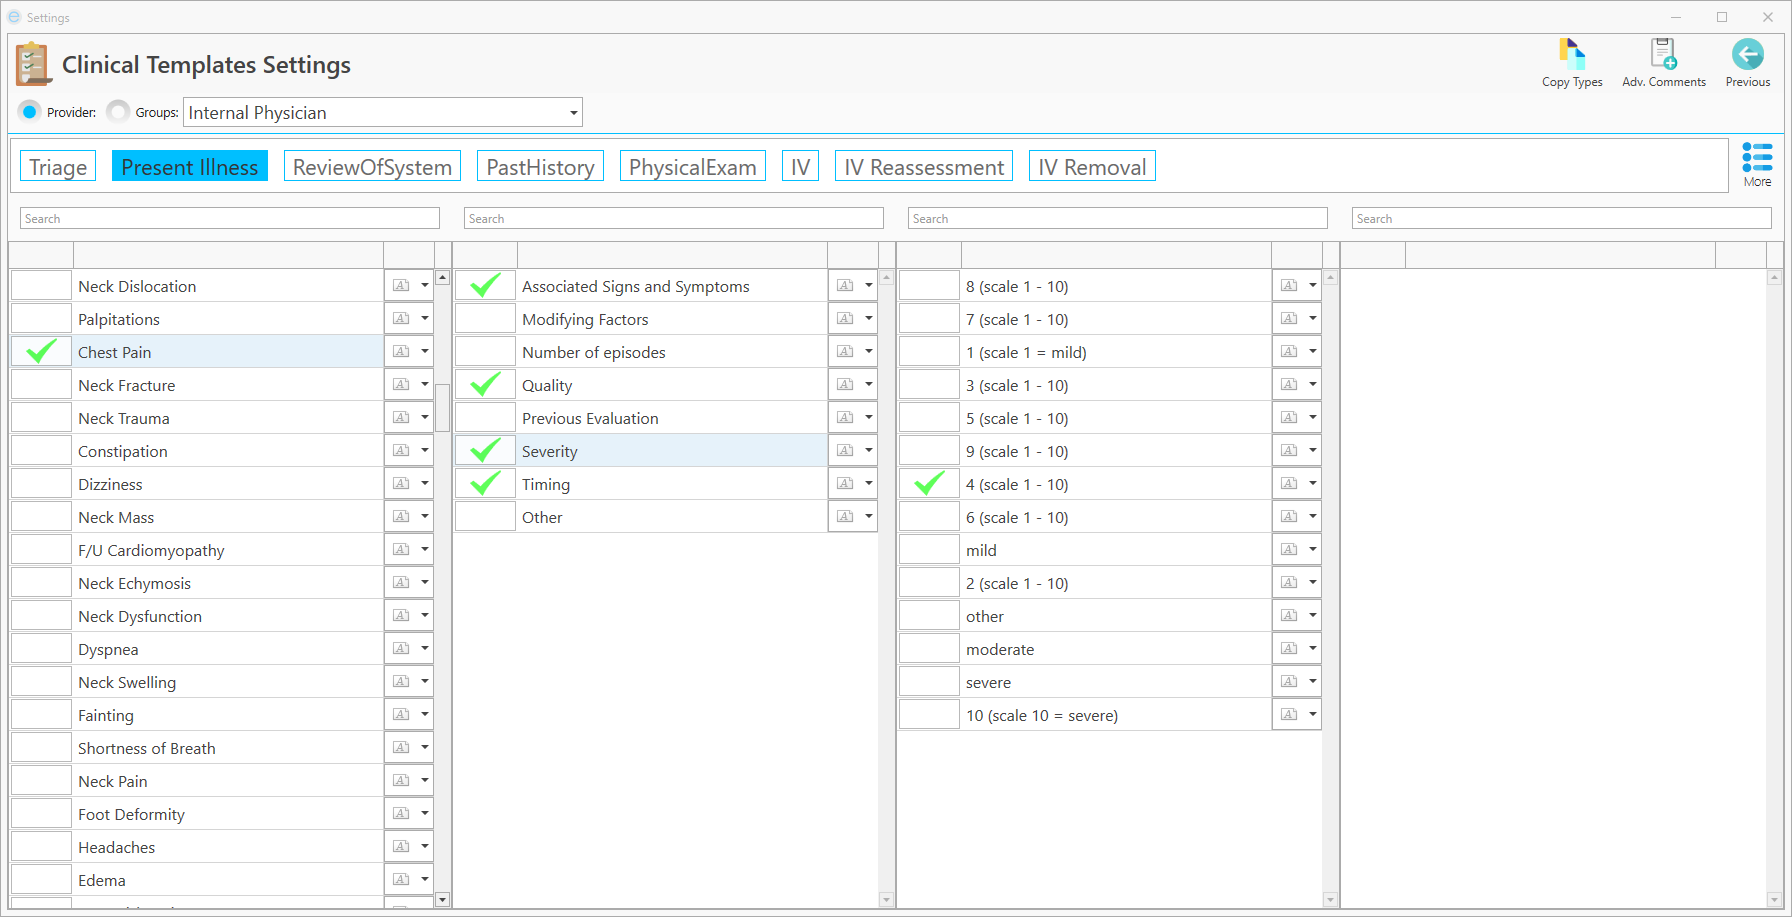 Settings Module - Clinical Templates Screen